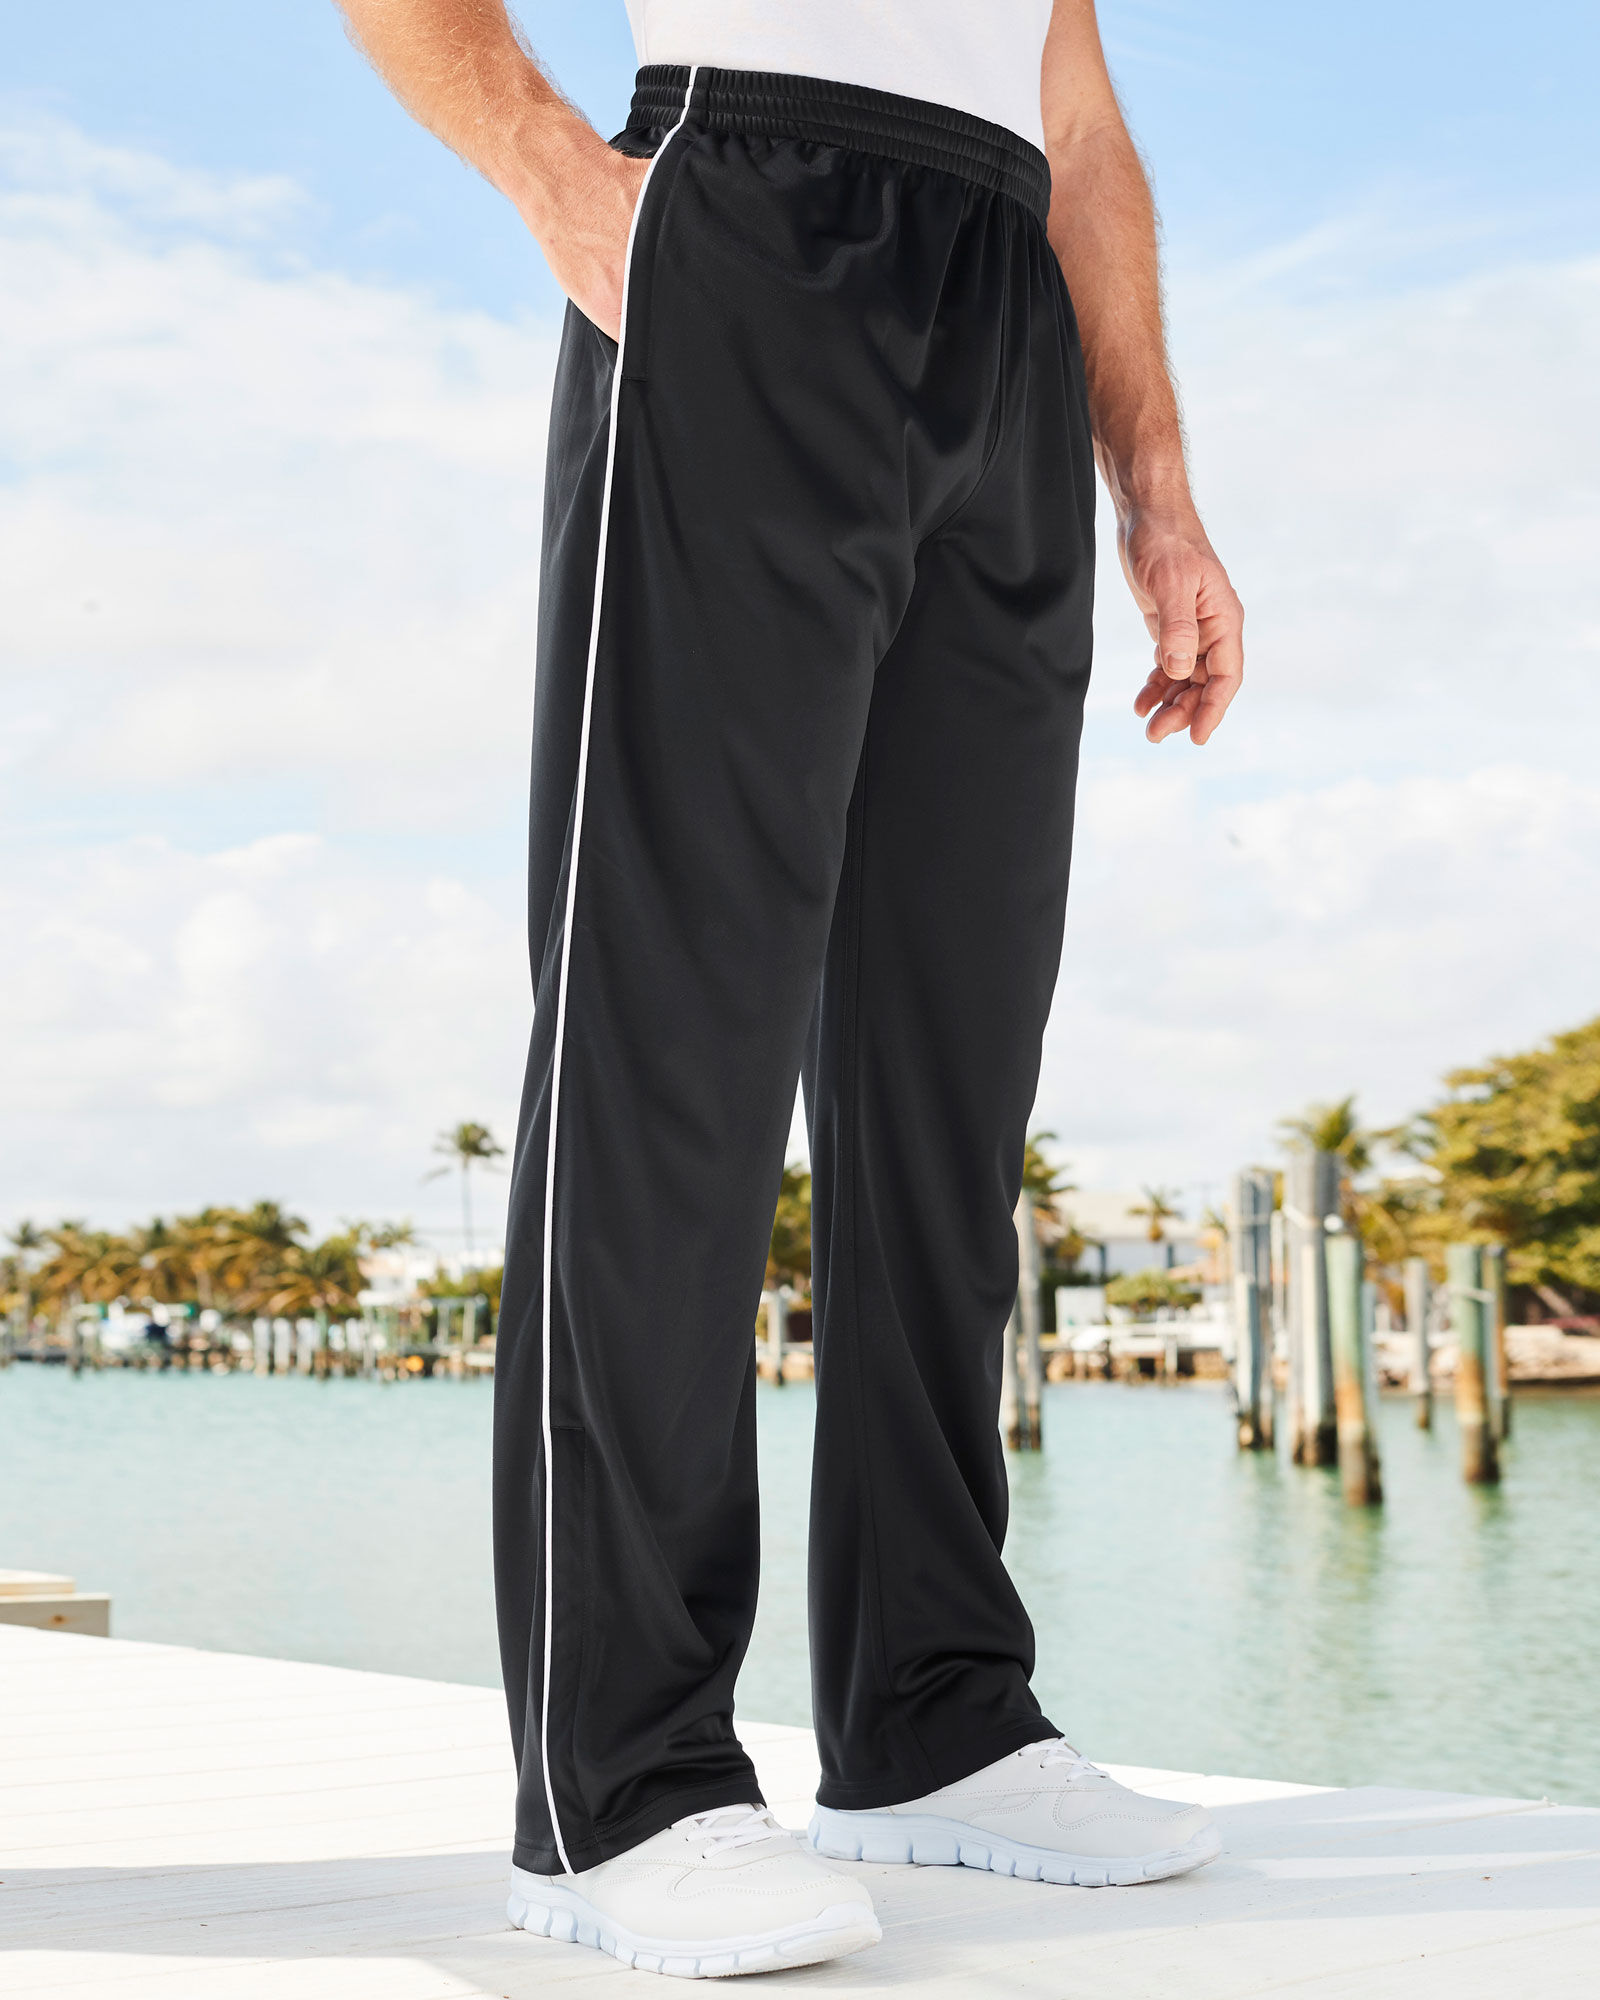 Tracksuit Bottoms at Cotton Traders